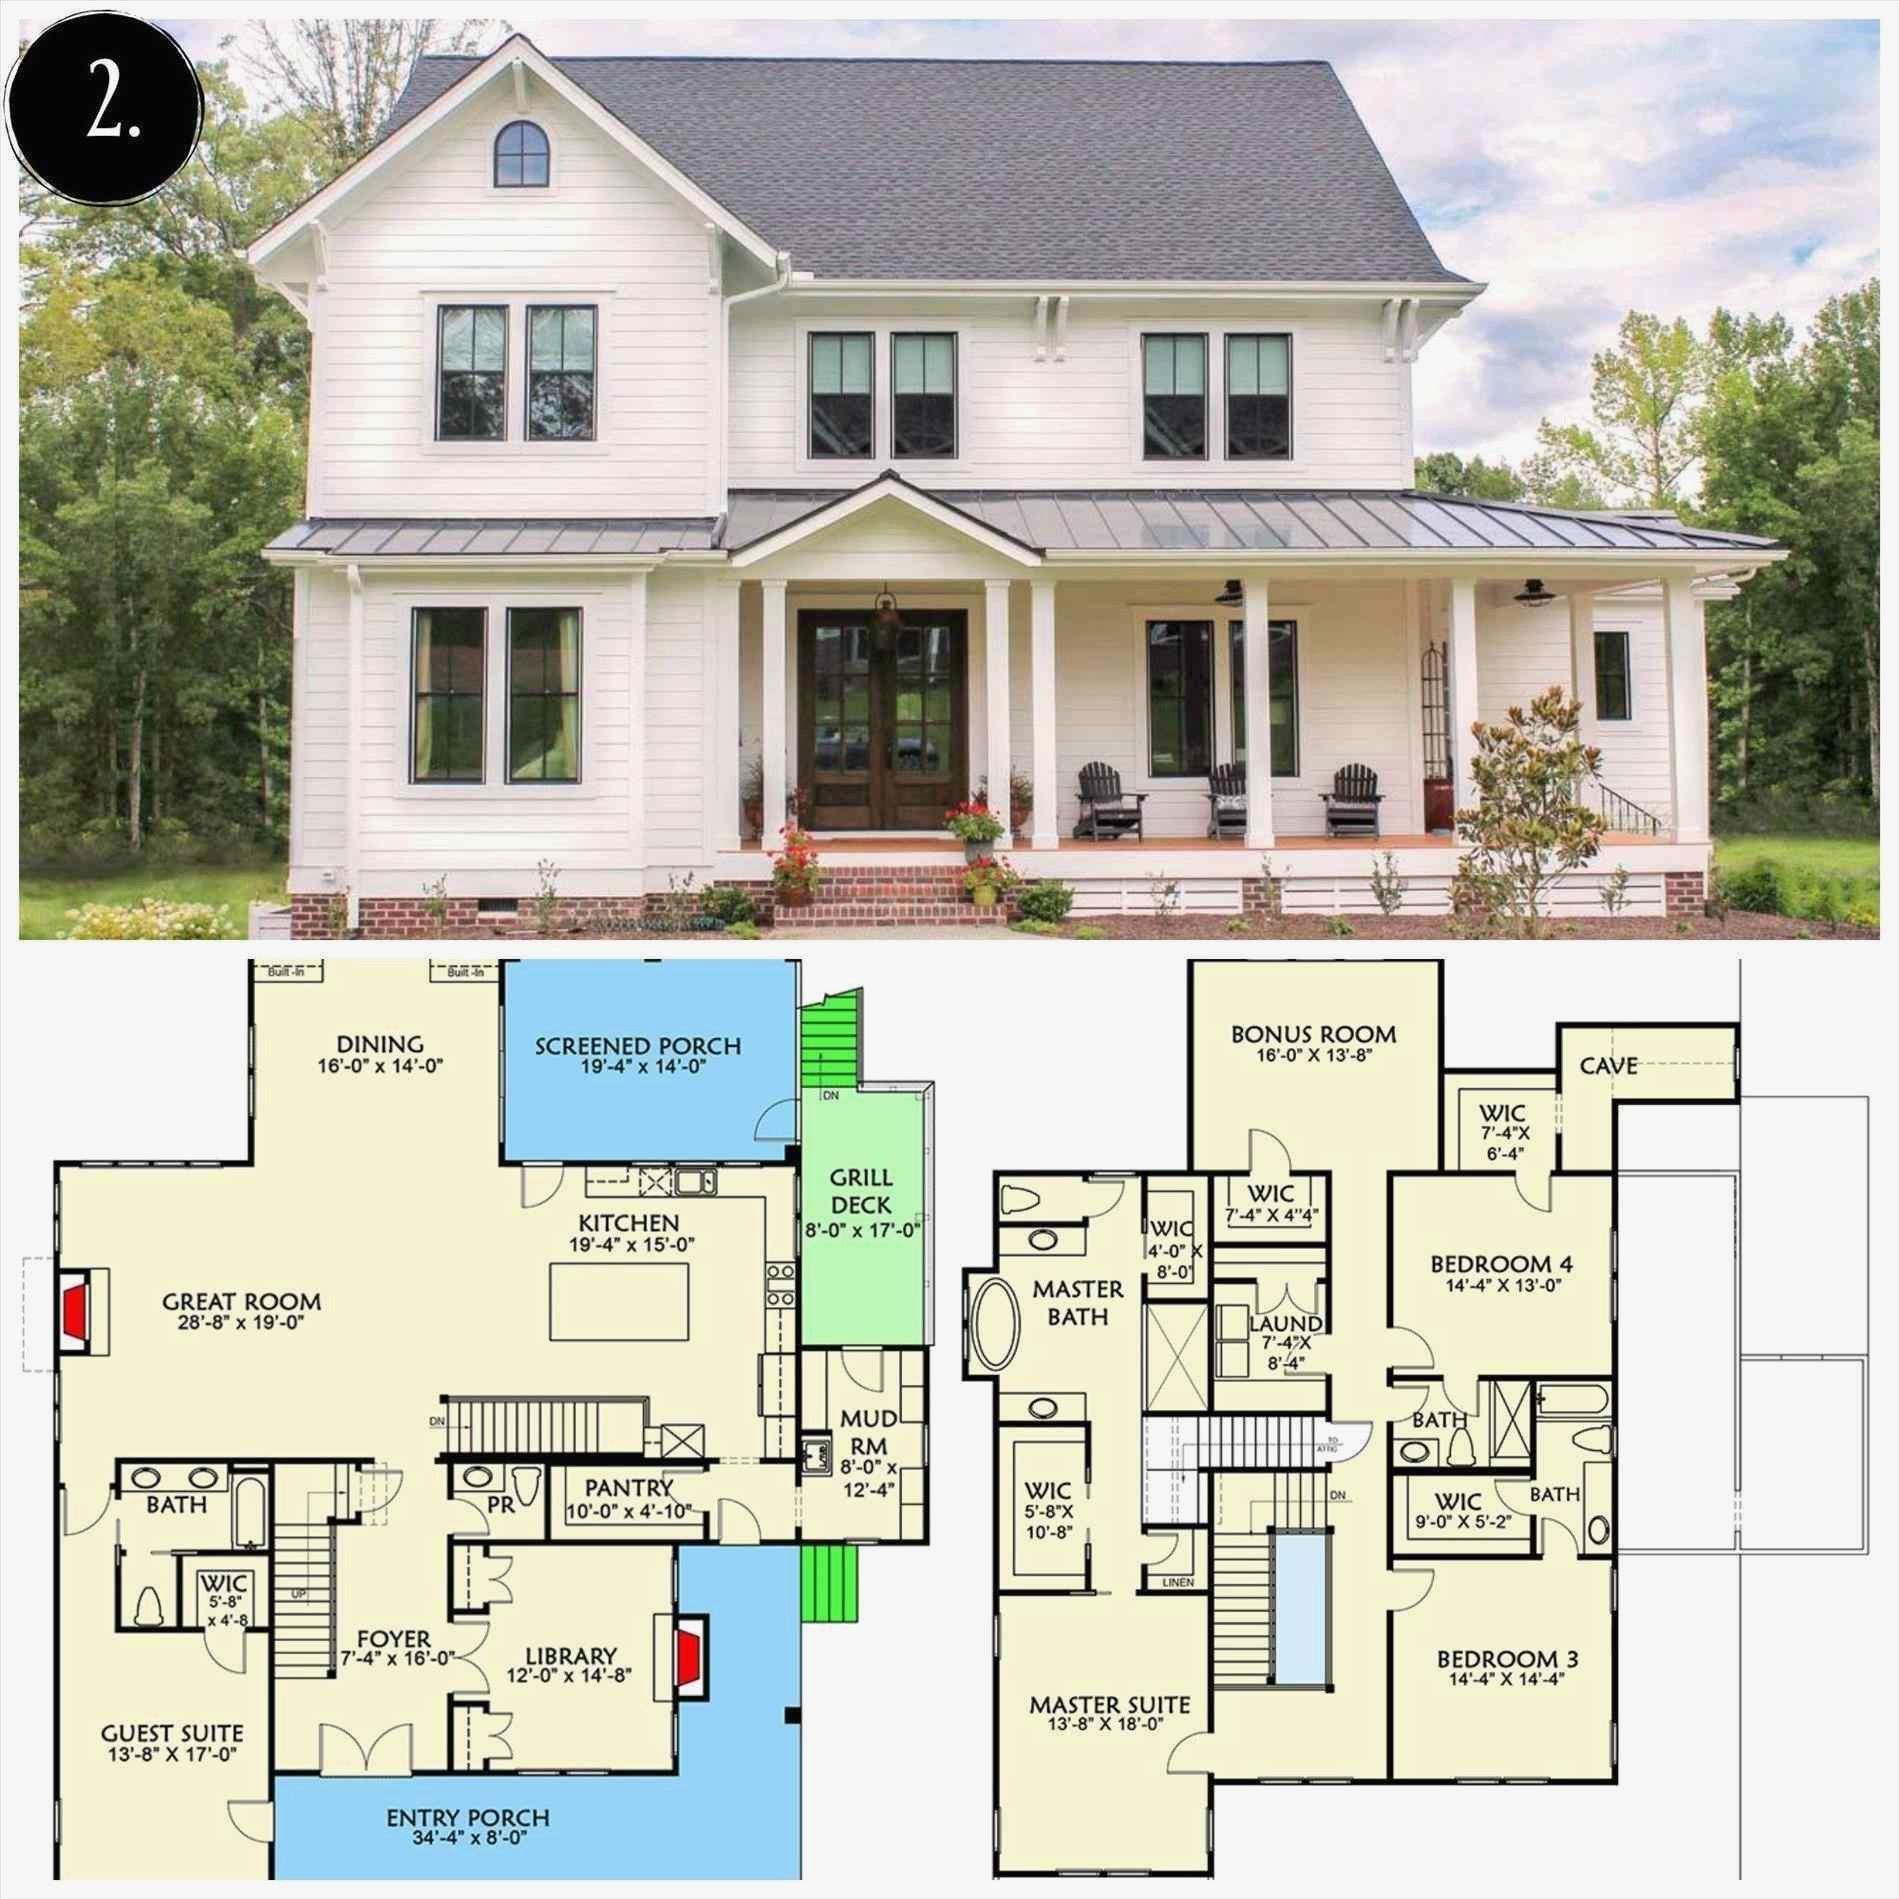 Modern Farmhouse Plans 2 Story Elegant Bedroom Modern Two Story Farmhouse Plans Design Far Farmhouse Floor Plans Modern Farmhouse Plans Modern Farmhouse Floors